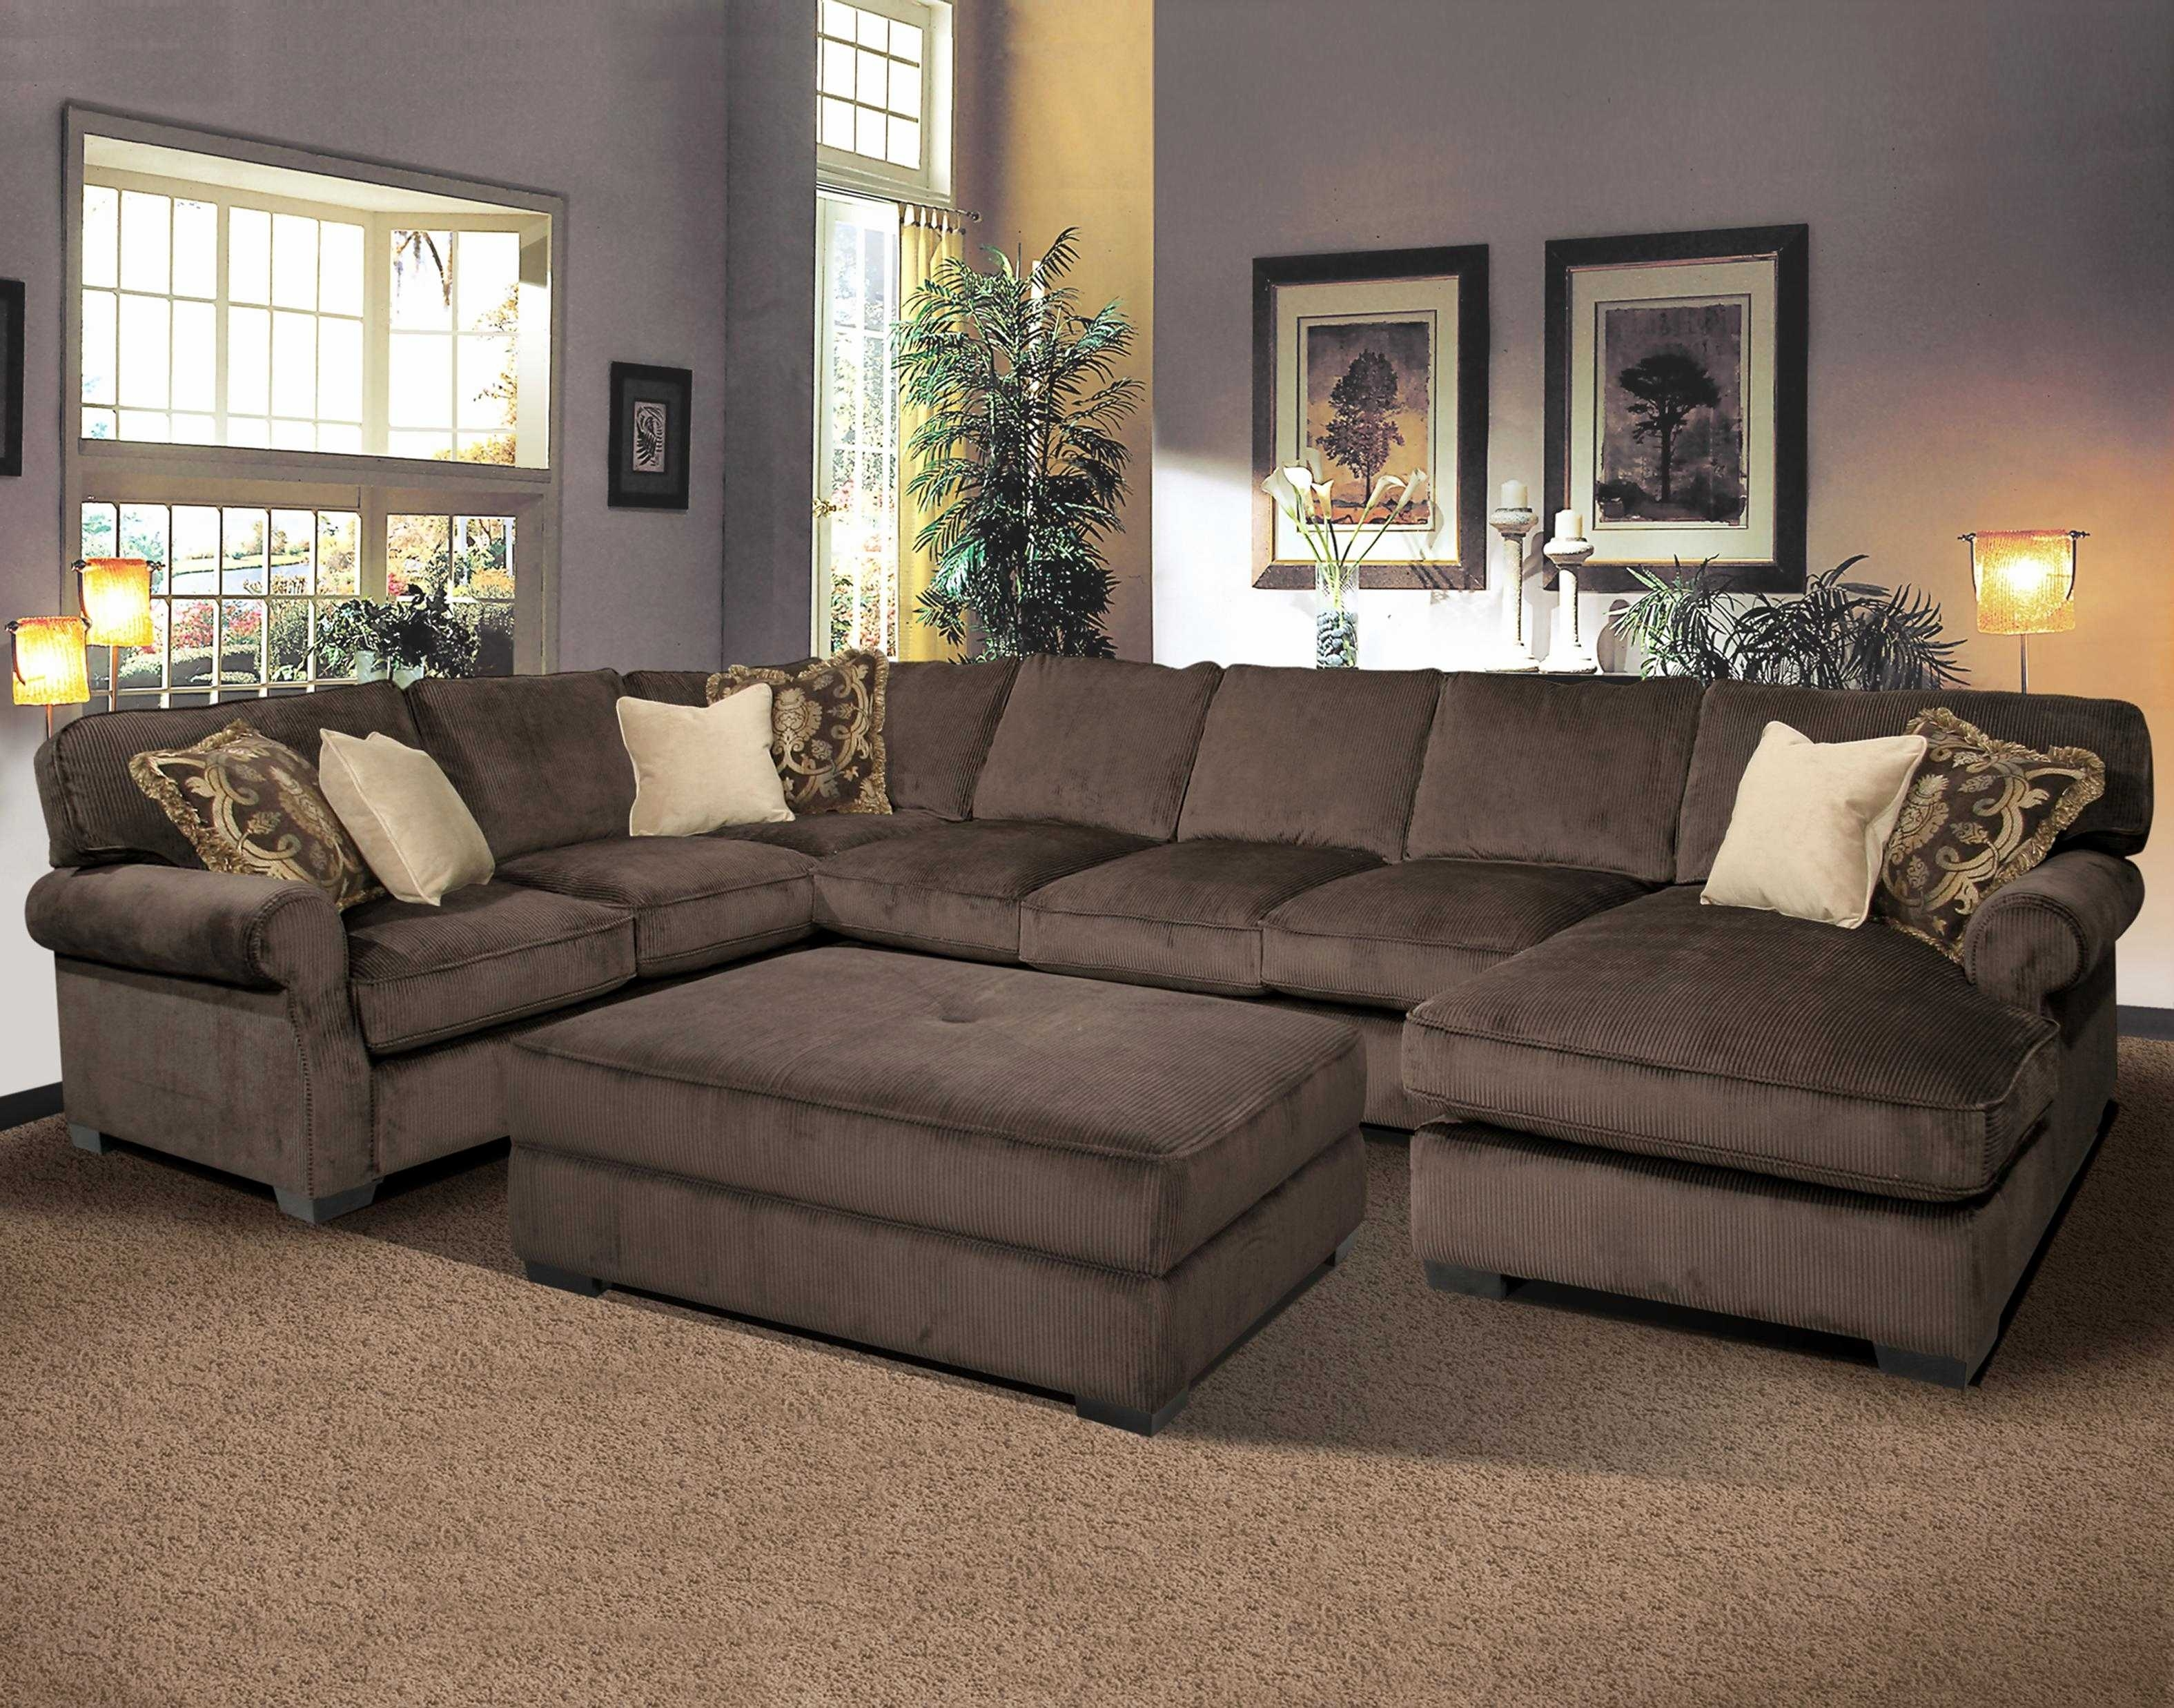 Unique Extra Wide Couch Inspirations And Stunning Sectional Sofa Regarding Wide Sectional Sofas (Photo 1 of 10)